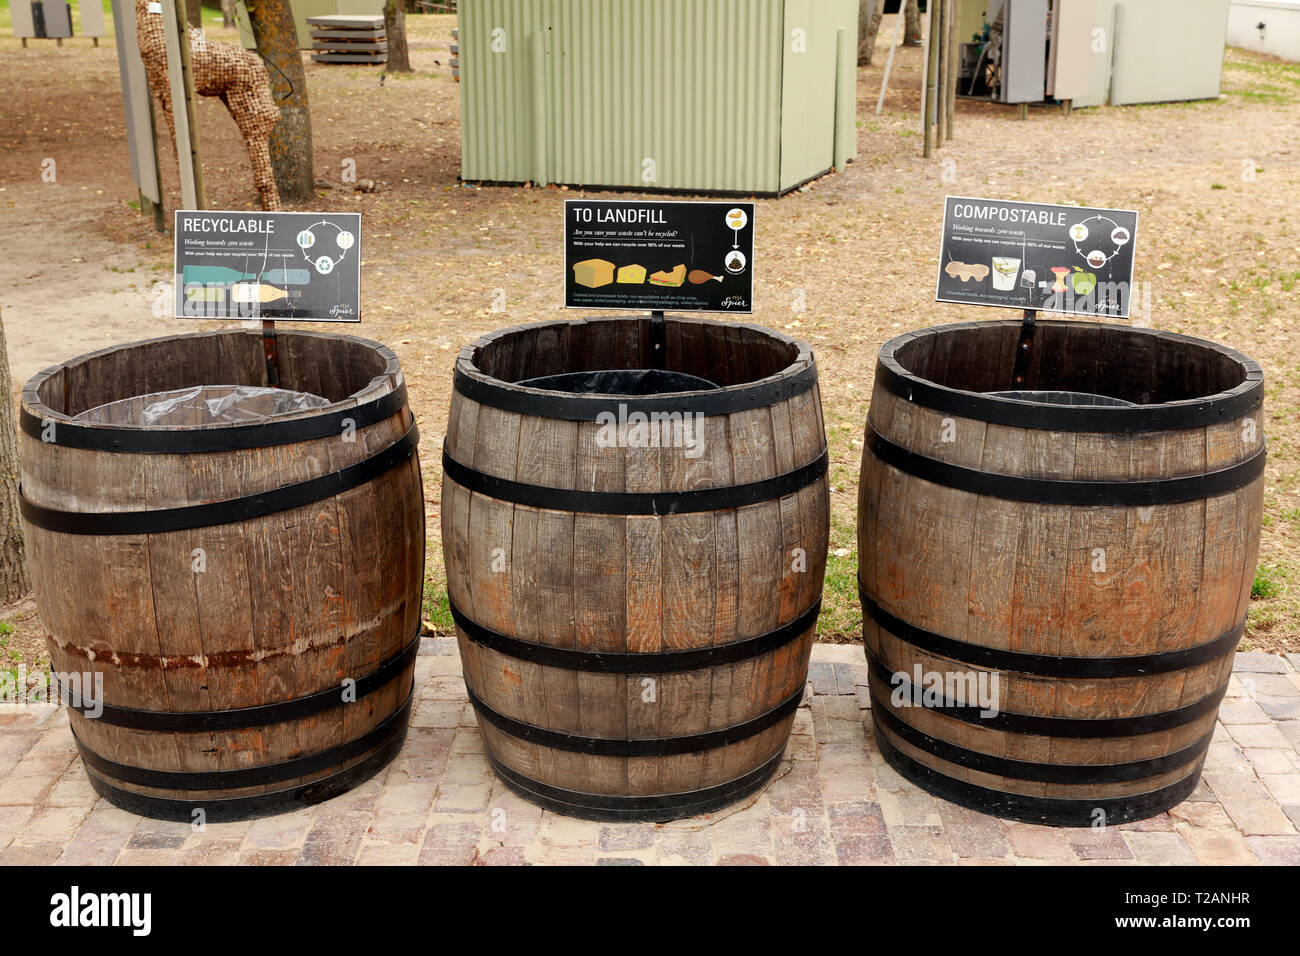 Refuse bins in wine crates for recycling, composting and landfill at  Spier Wine Farm , Stellenbosch, Western Cape Province, South Africa. - Stock Image